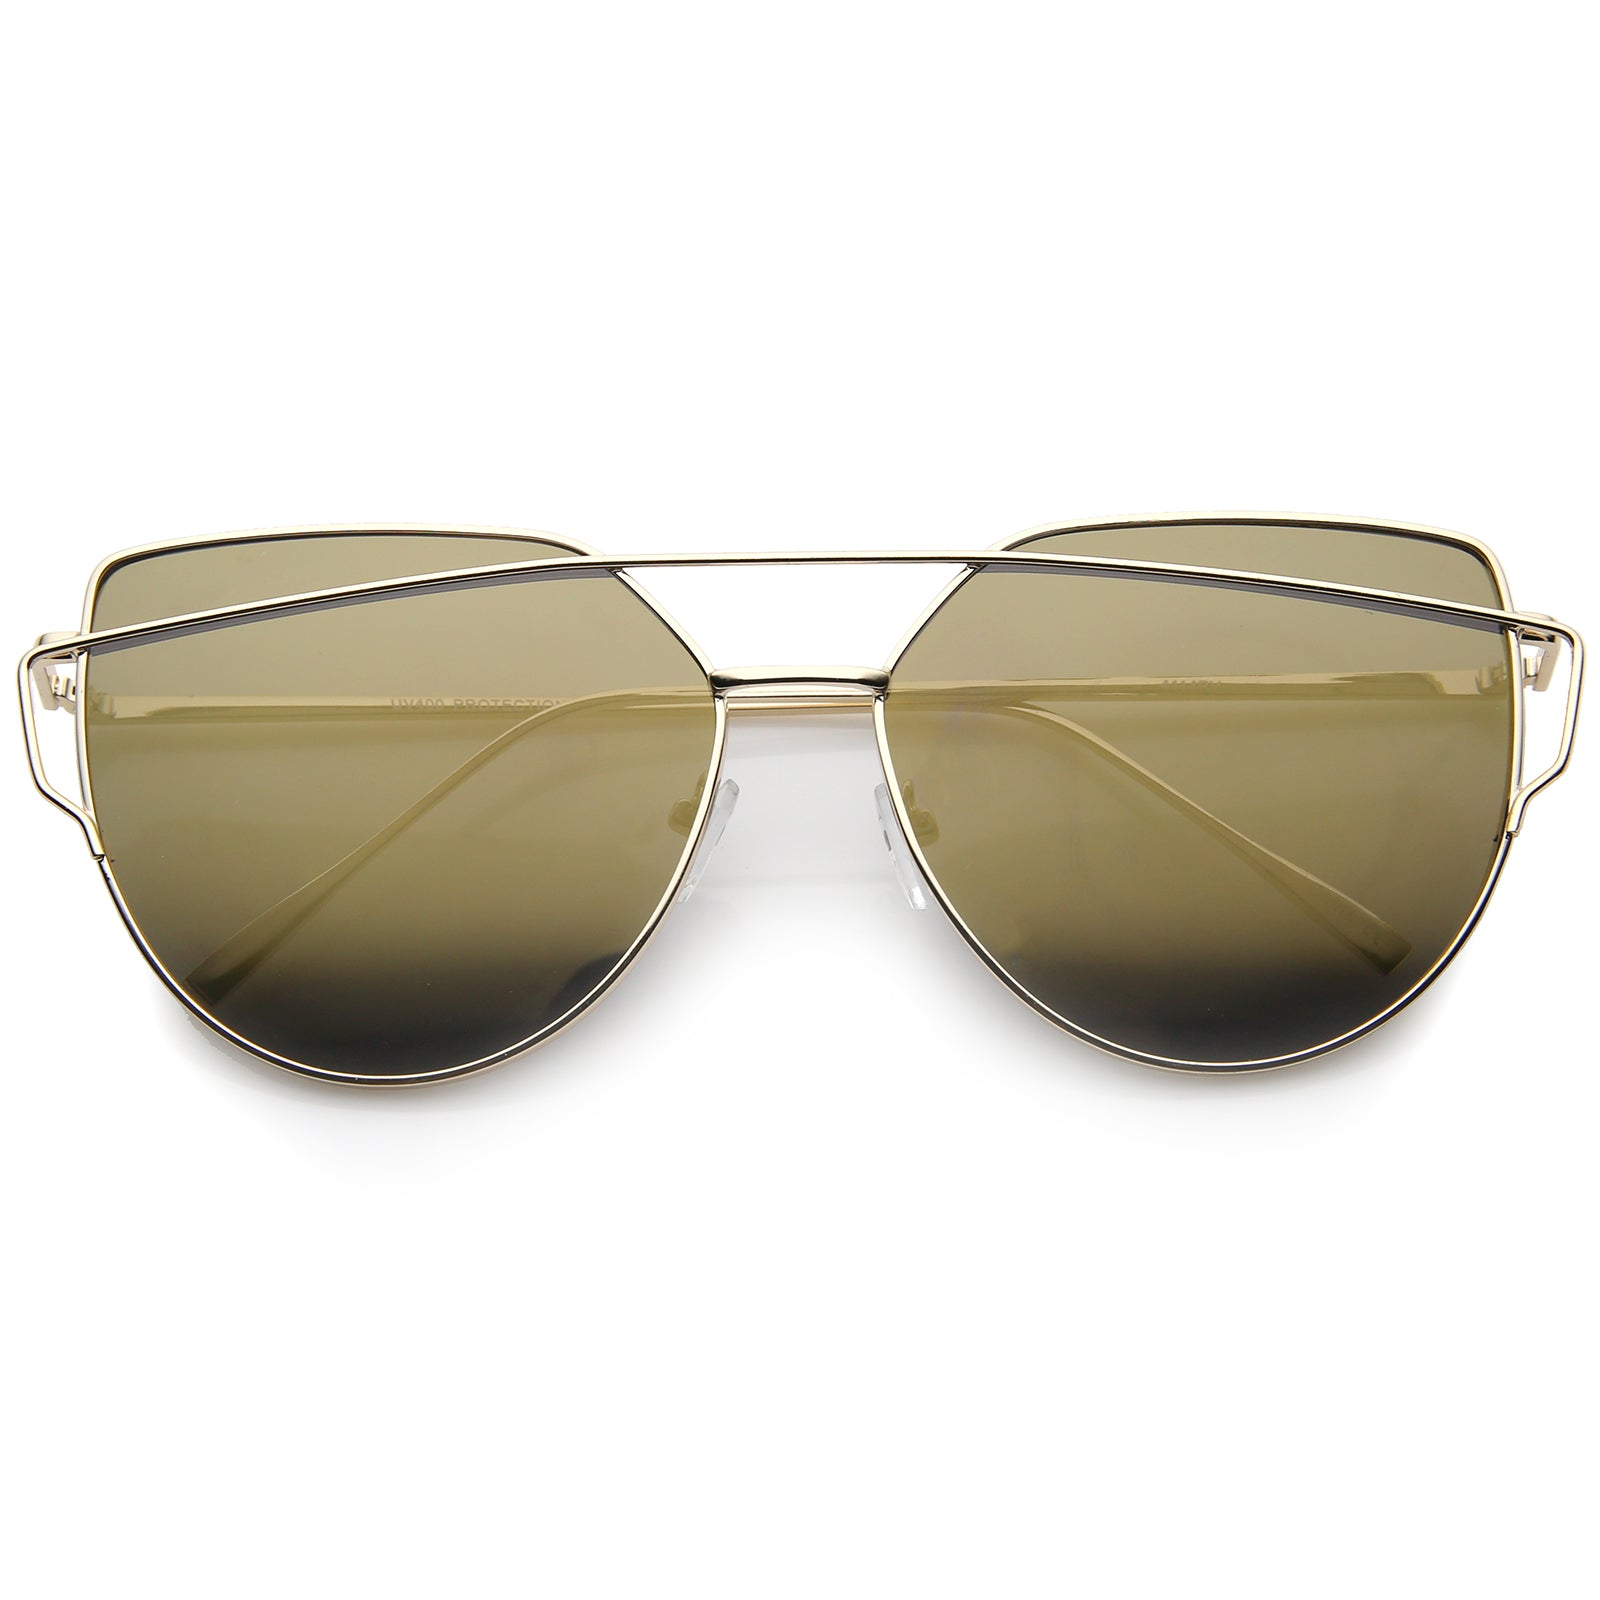 Oversize Metal Frame Thin Temple Color Mirror Flat Lens Aviator Sunglasses 62mm - sunglass.la - 17